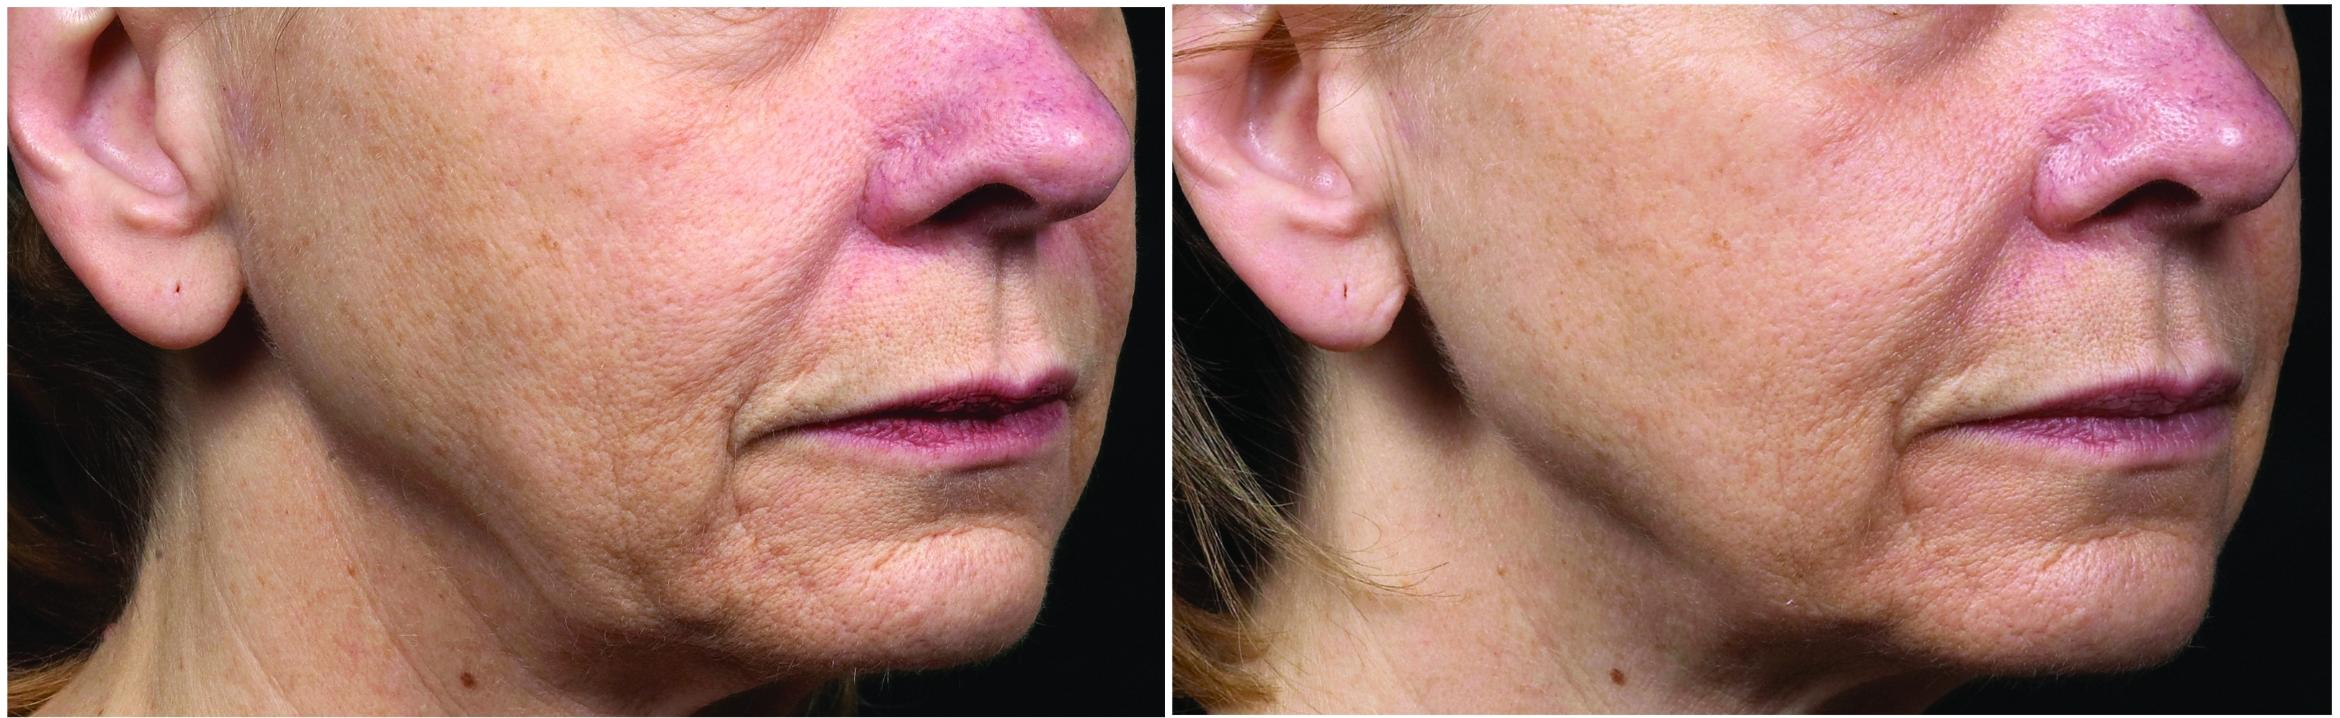 Thermage Case 25 Before & After Right Oblique | Houston, TX | DermSurgery Associates